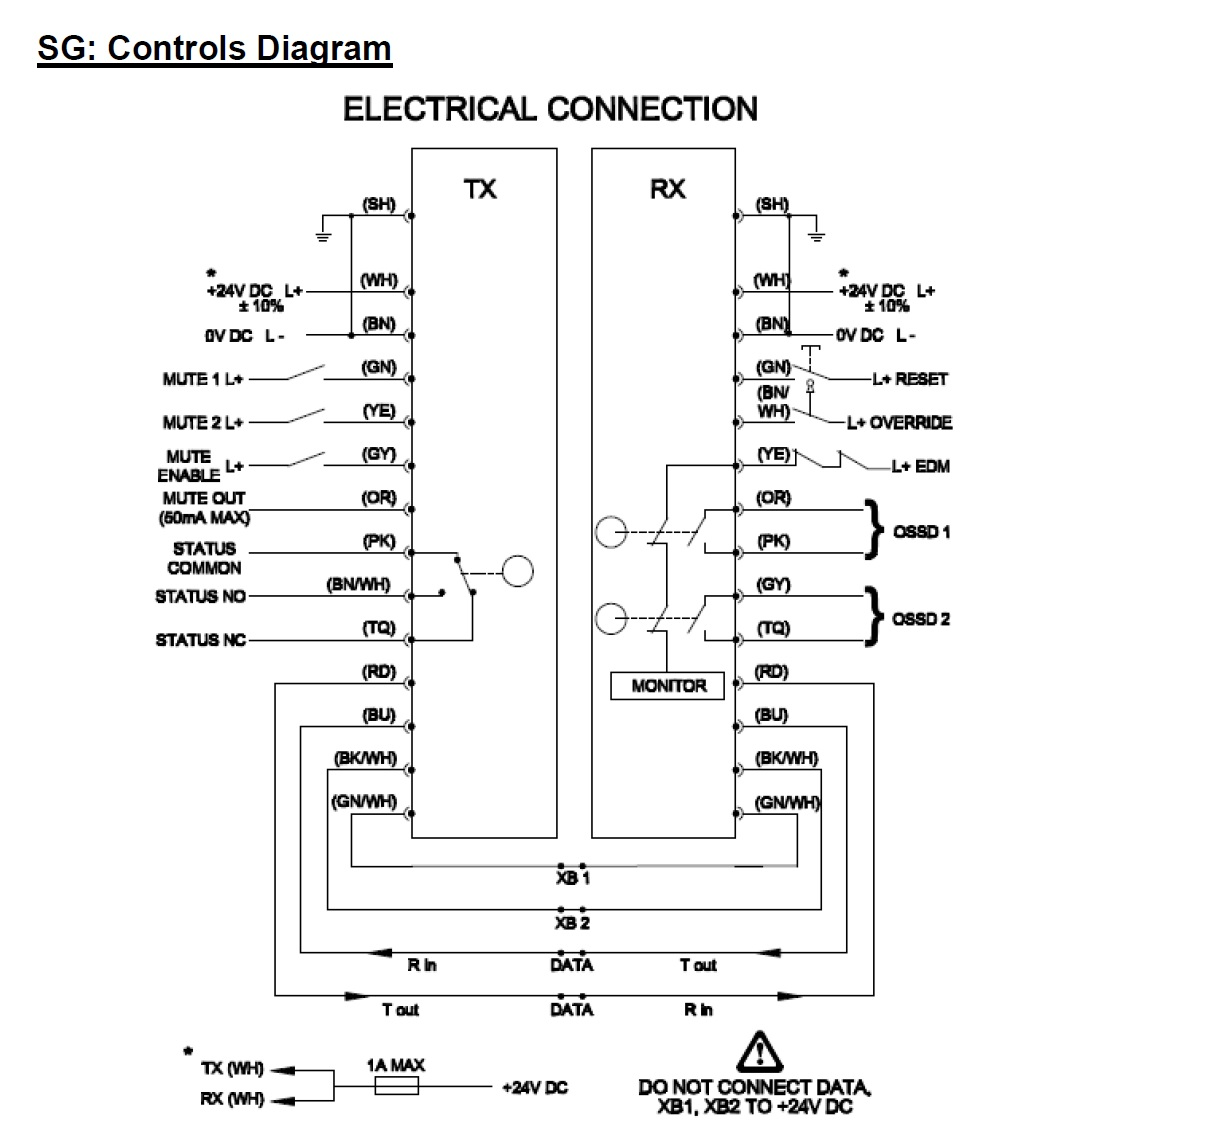 sg_controls?resize=800%2C746 light curtain wiring diagram starter wiring diagram, relay wiring safety mat wiring diagram at gsmportal.co